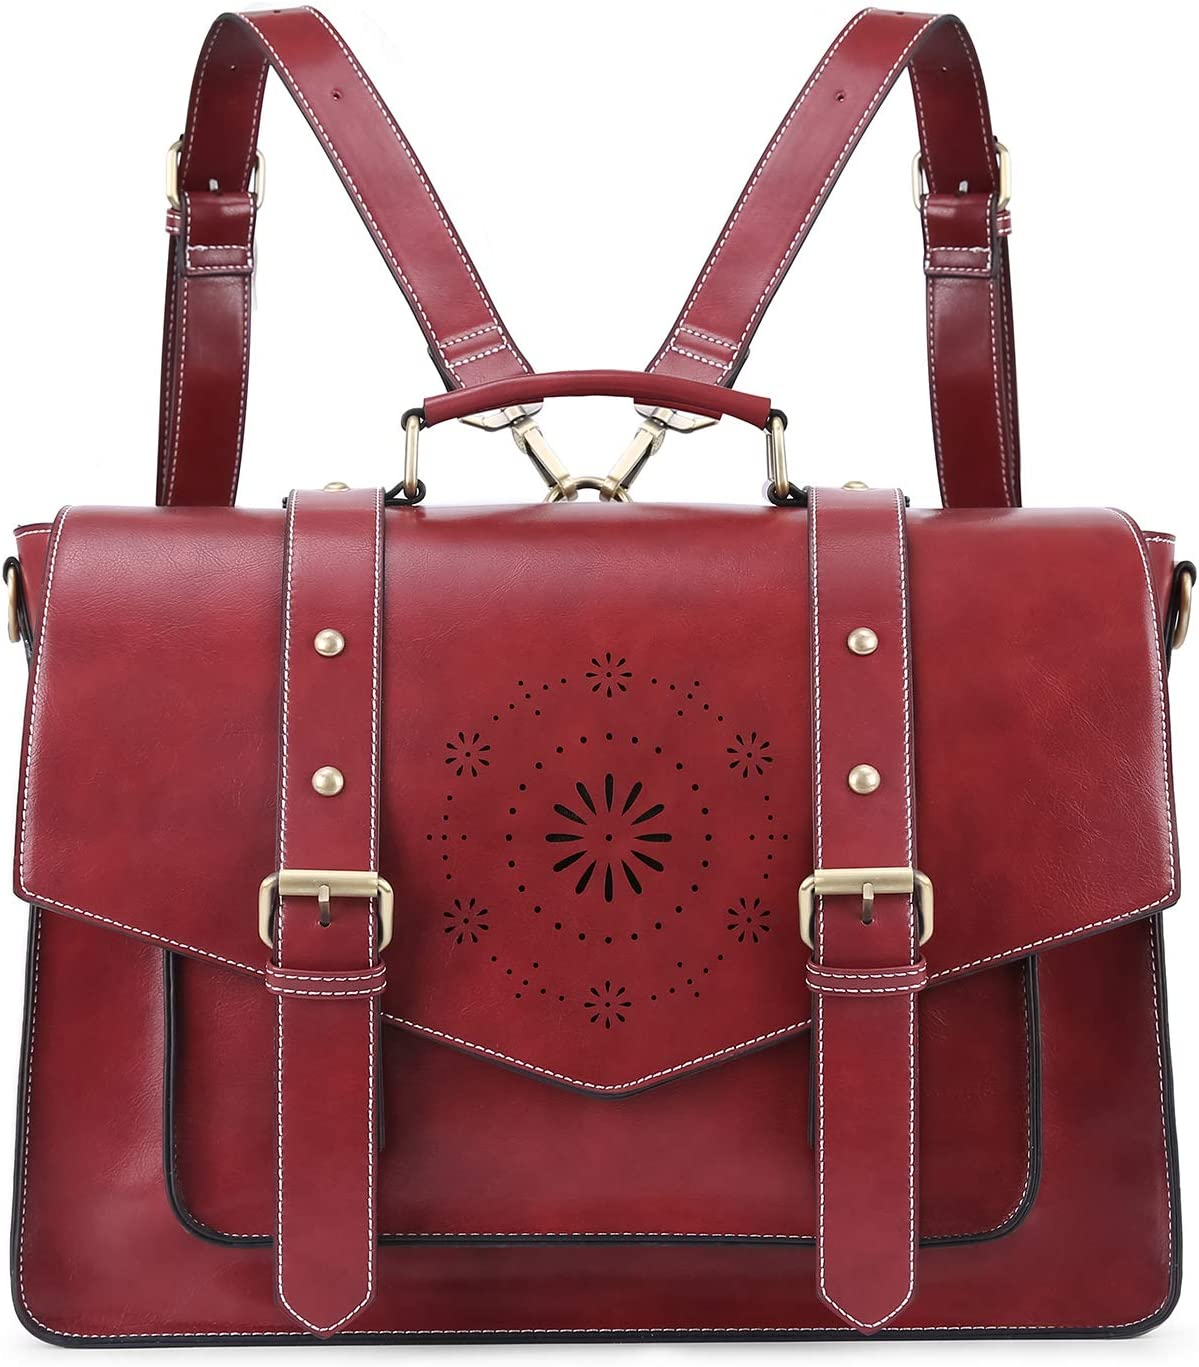 ECOSUSI Backpack for Women Briefcase Messenger Laptop Bag Vegan Leather Satchel Work Bags Fits 15.6 inch Laptops, Red